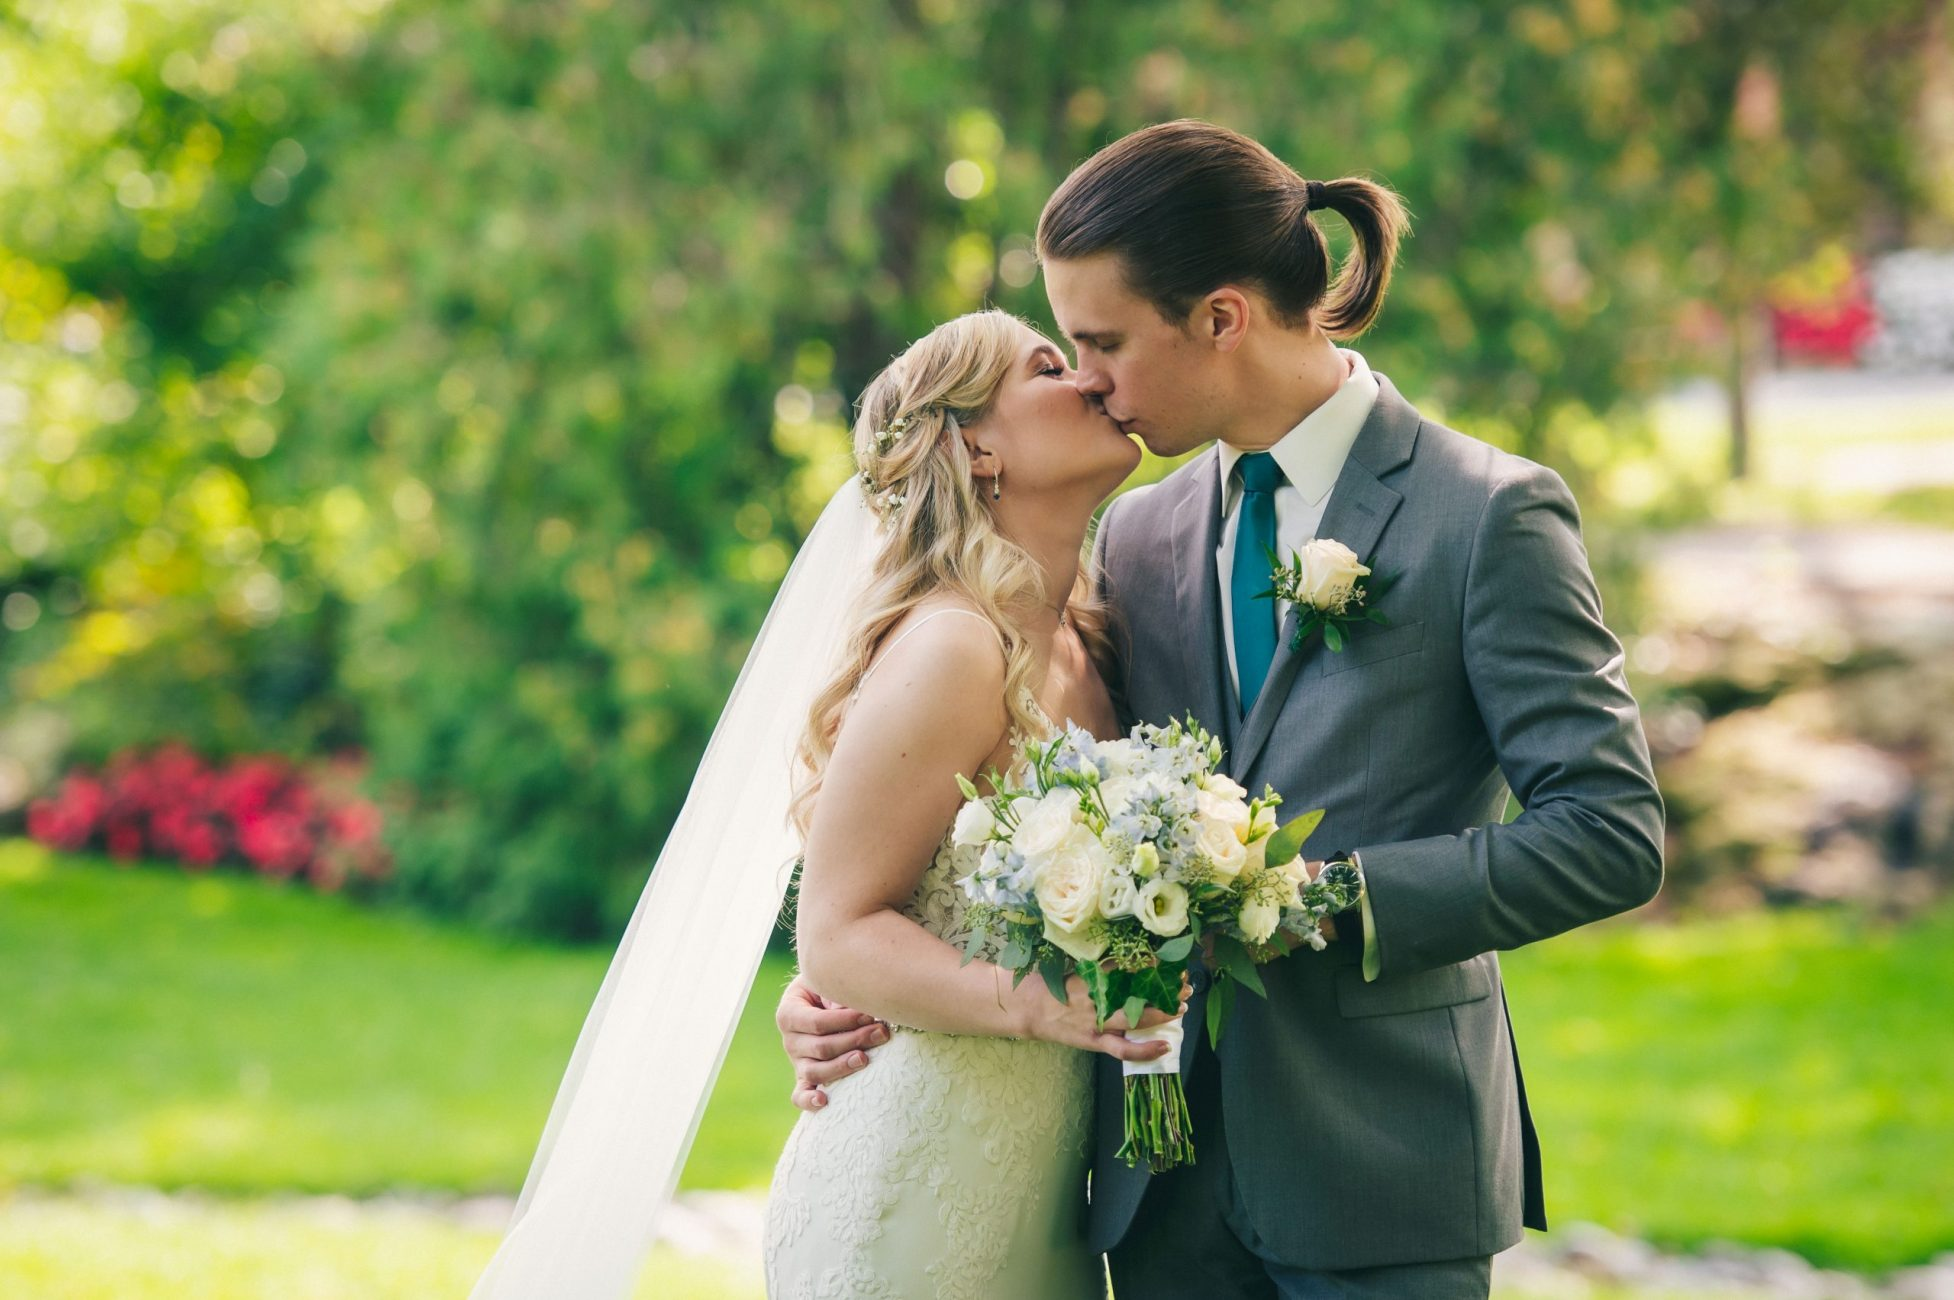 adding plus ones for your wedding day